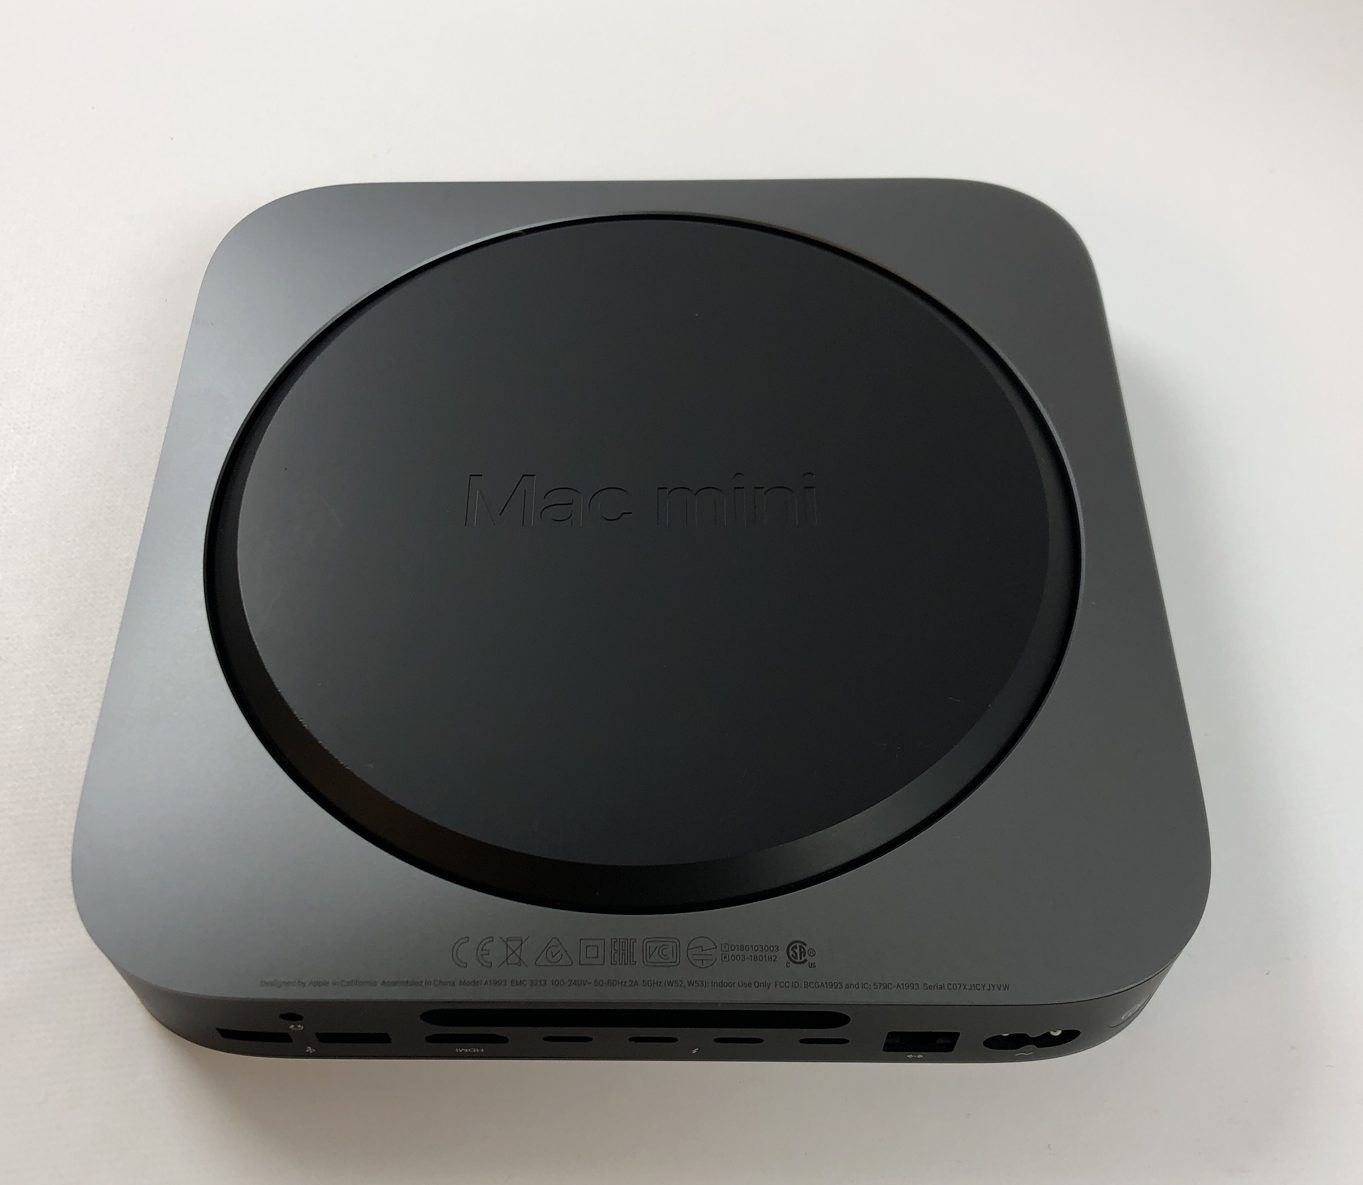 Mac Mini Late 2018 (Intel Quad-Core i3 3.6 GHz 64 GB RAM 128 GB SSD), Intel Quad-Core i3 3.6 GHz, 64 GB RAM, 128 GB SSD, Afbeelding 2